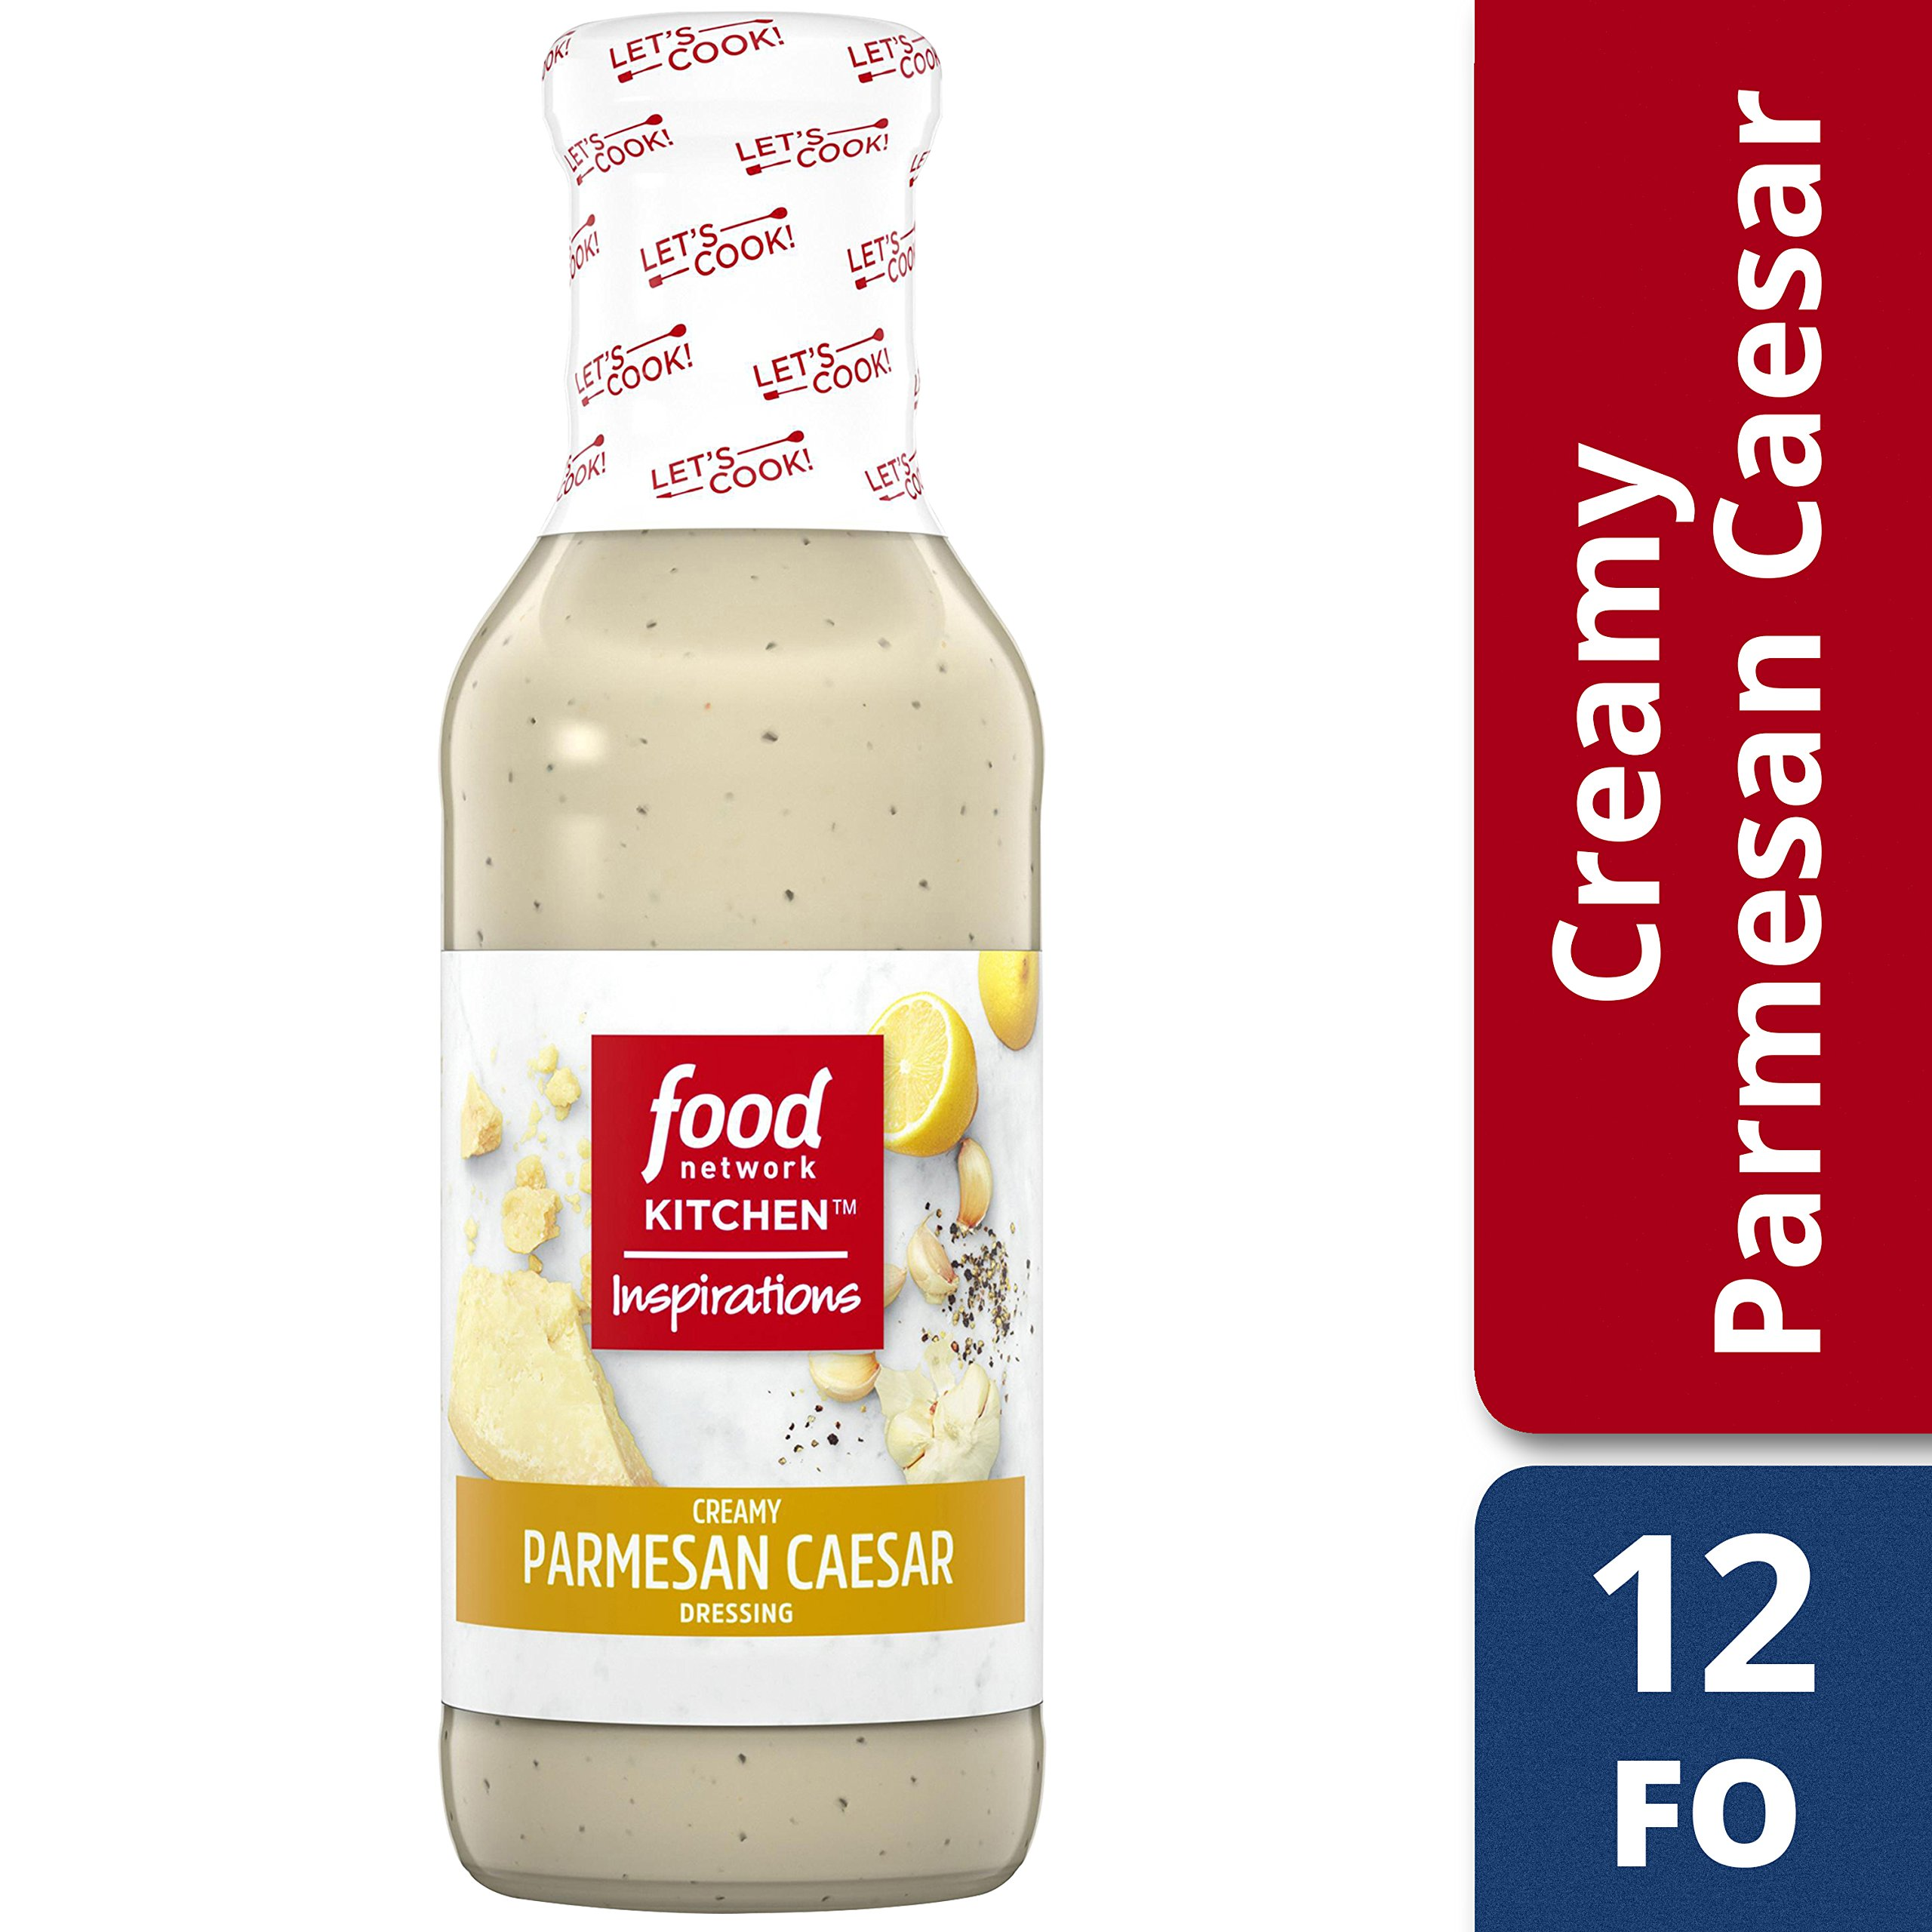 Food Network Kitchen Inspirations Creamy Parmesan Caesar Dressing, 12 oz